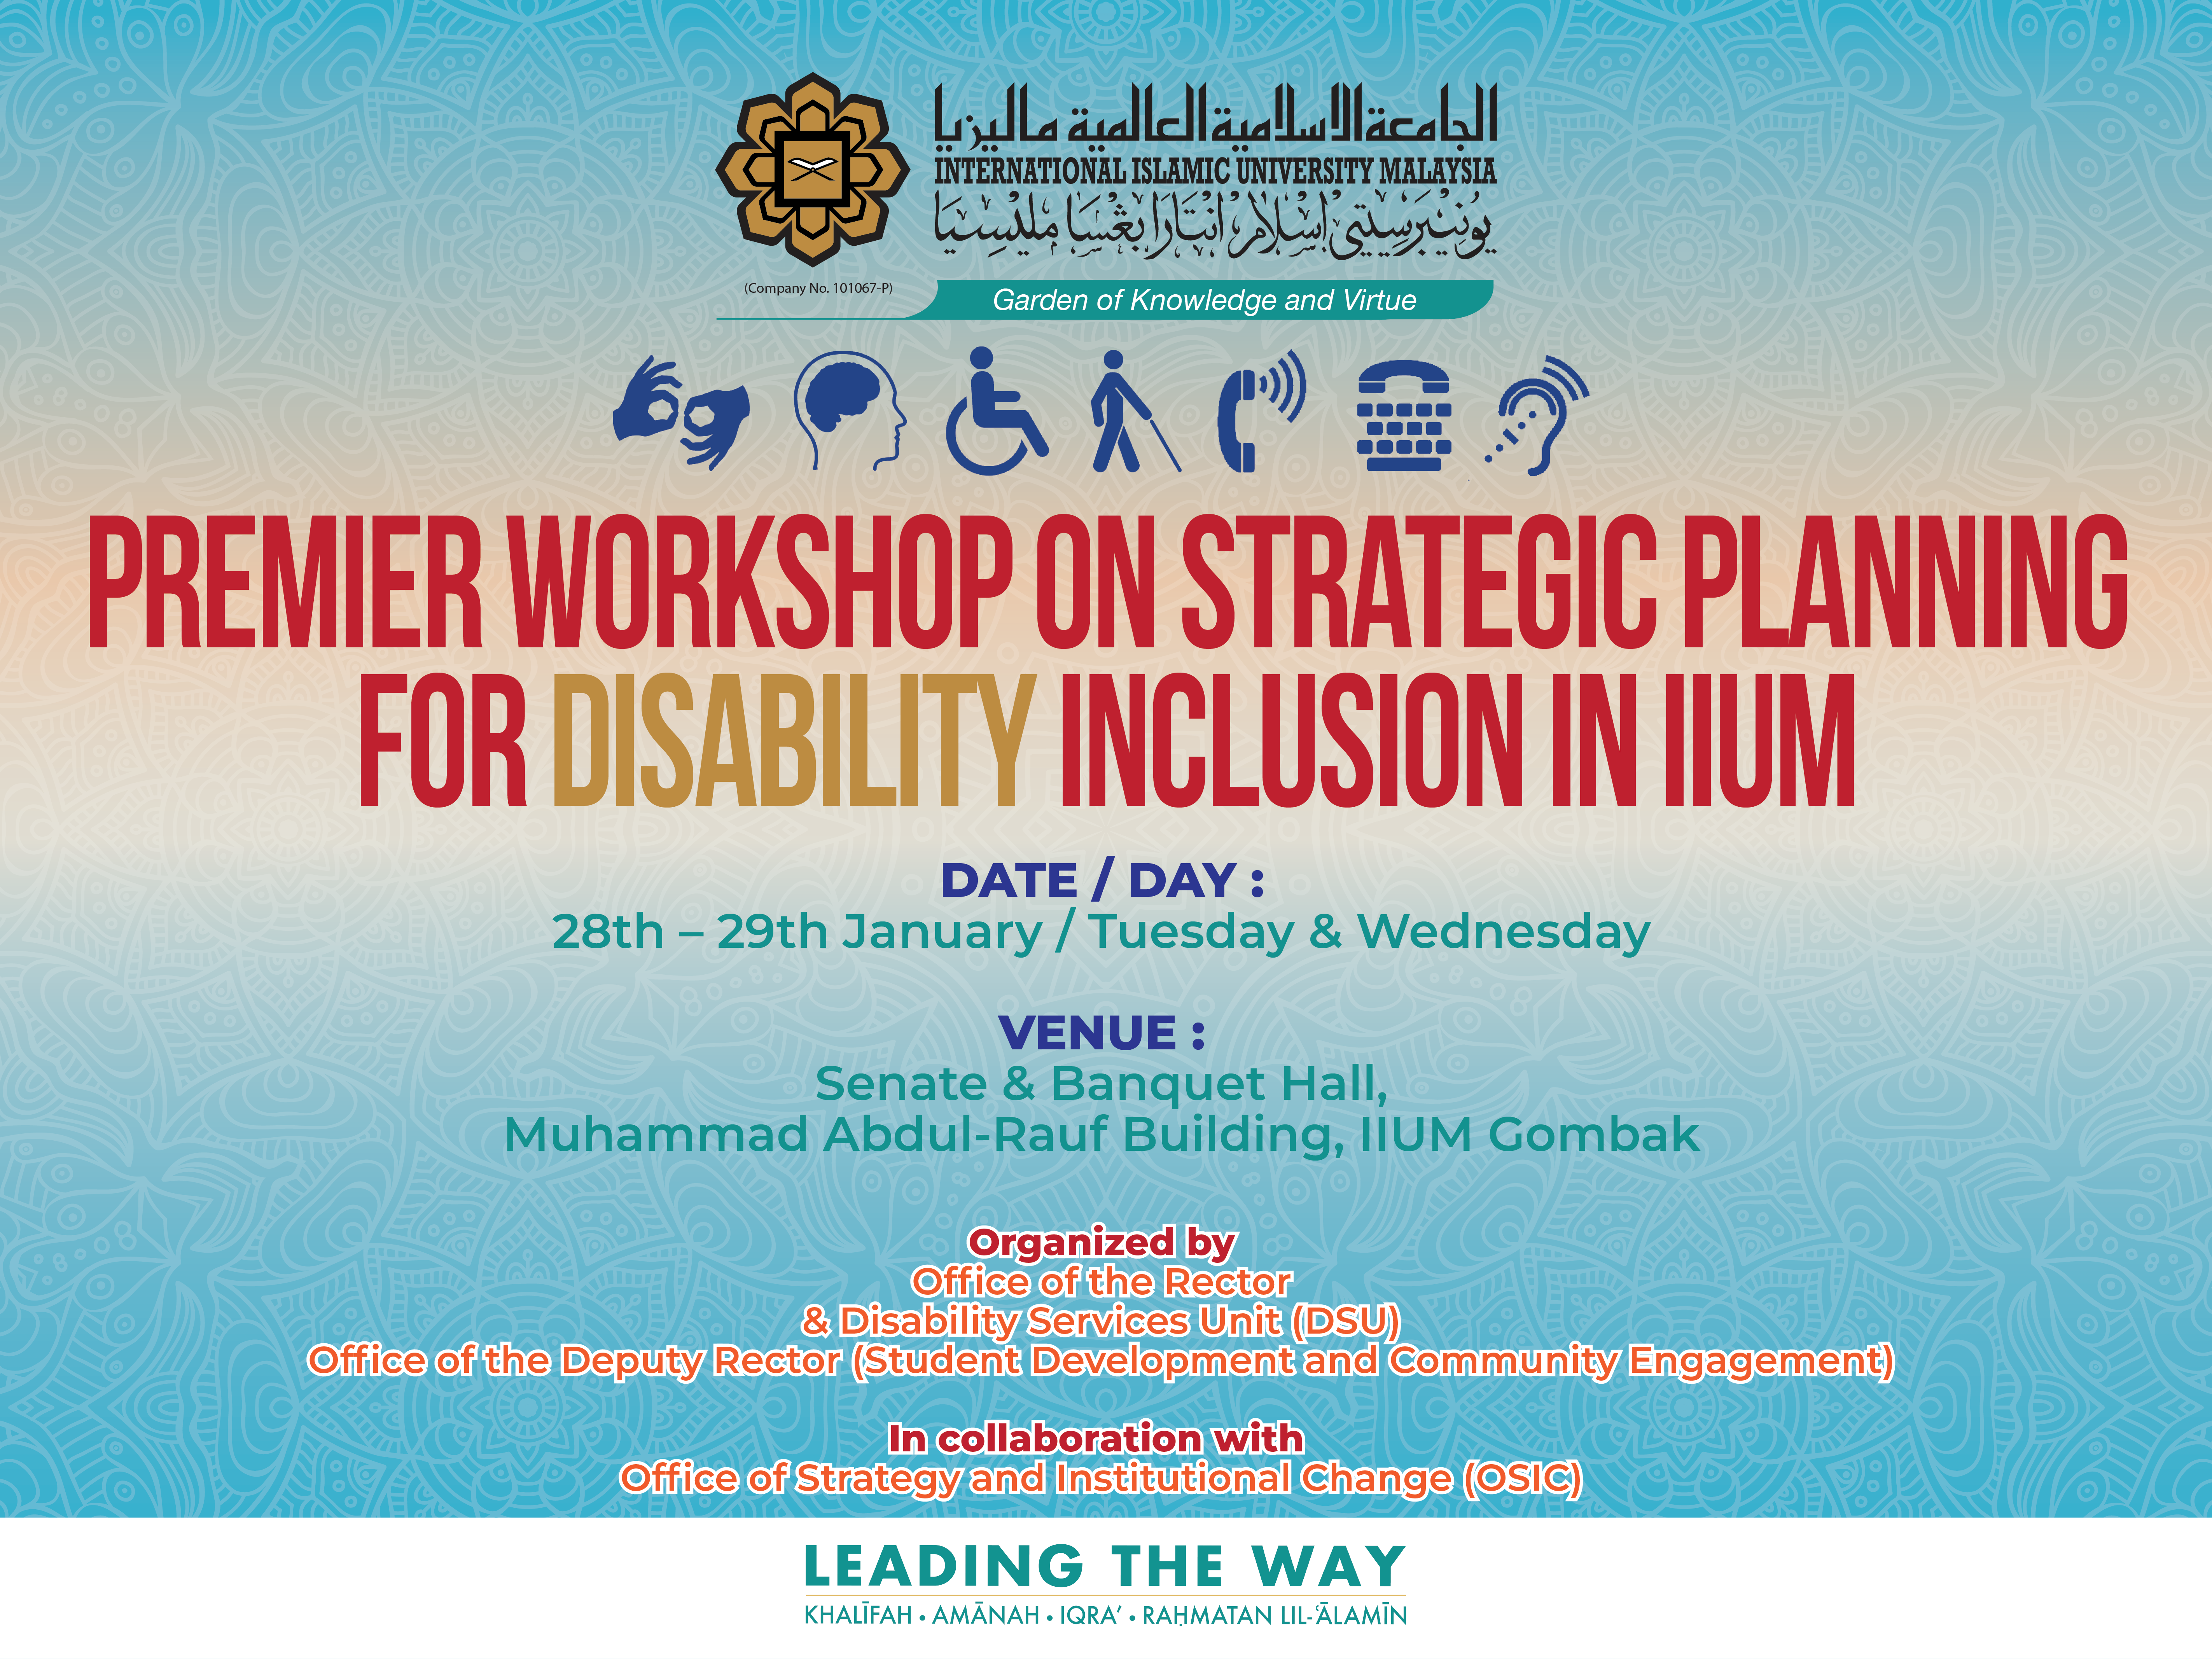 Premier Workshop for Strategic Plan of IIUM Disability Inclusion Policy Implementation